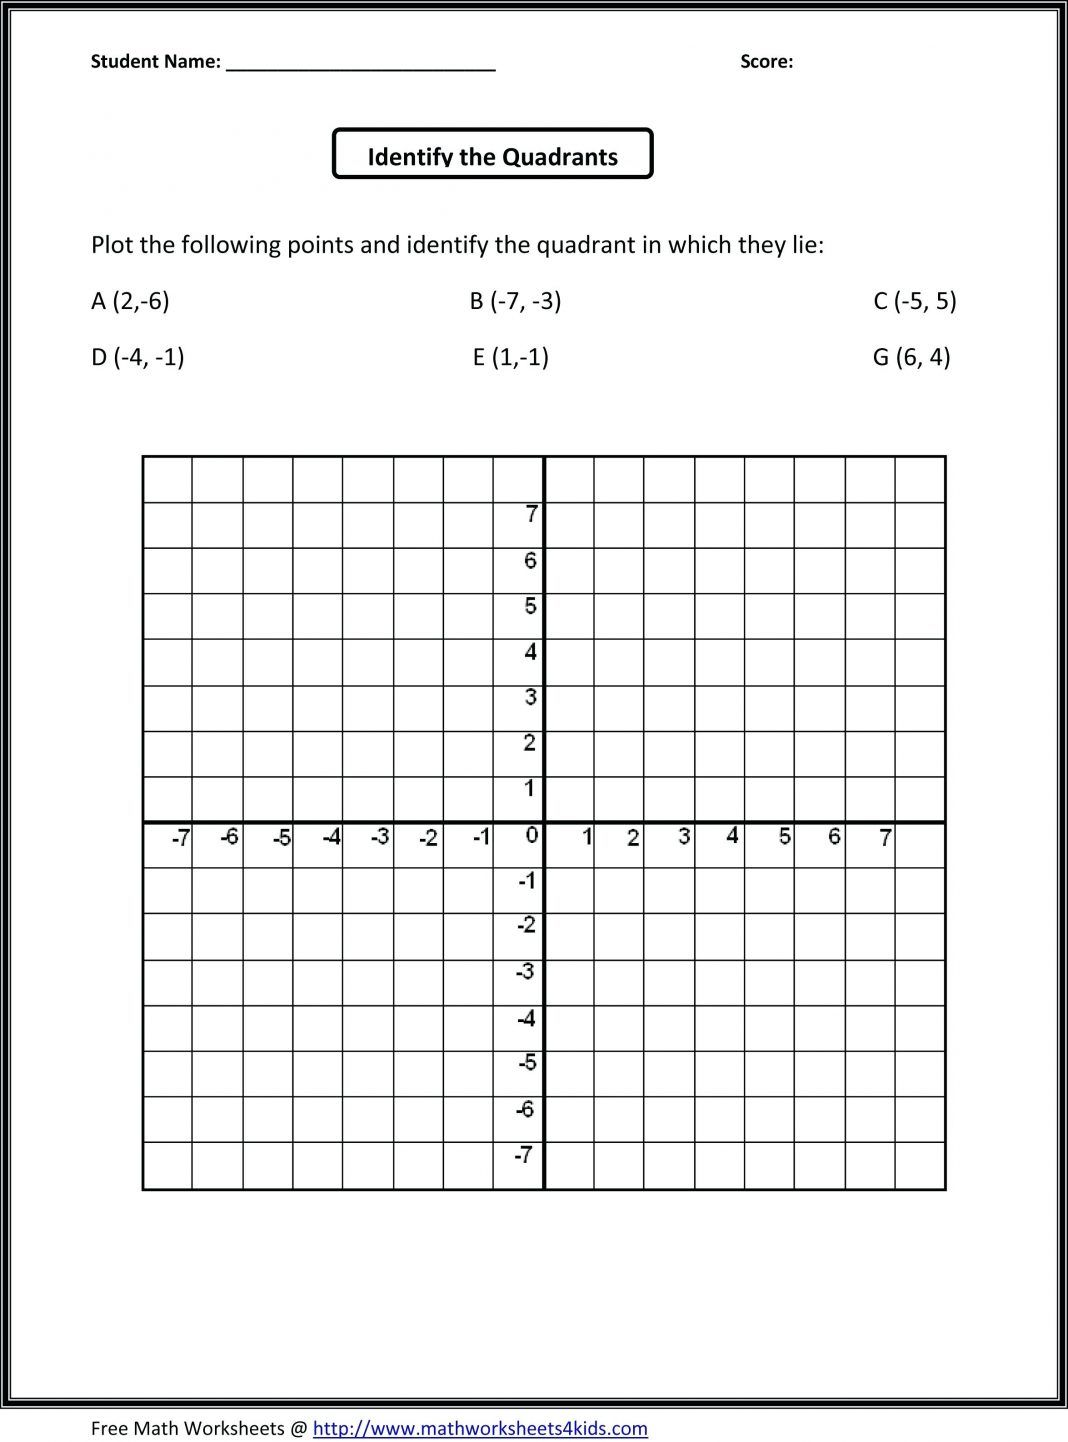 41 Stunning 6th Grade Math Worksheets Design Bacamajalah 6th Grade Worksheets Printable Math Worksheets 5th Grade Worksheets